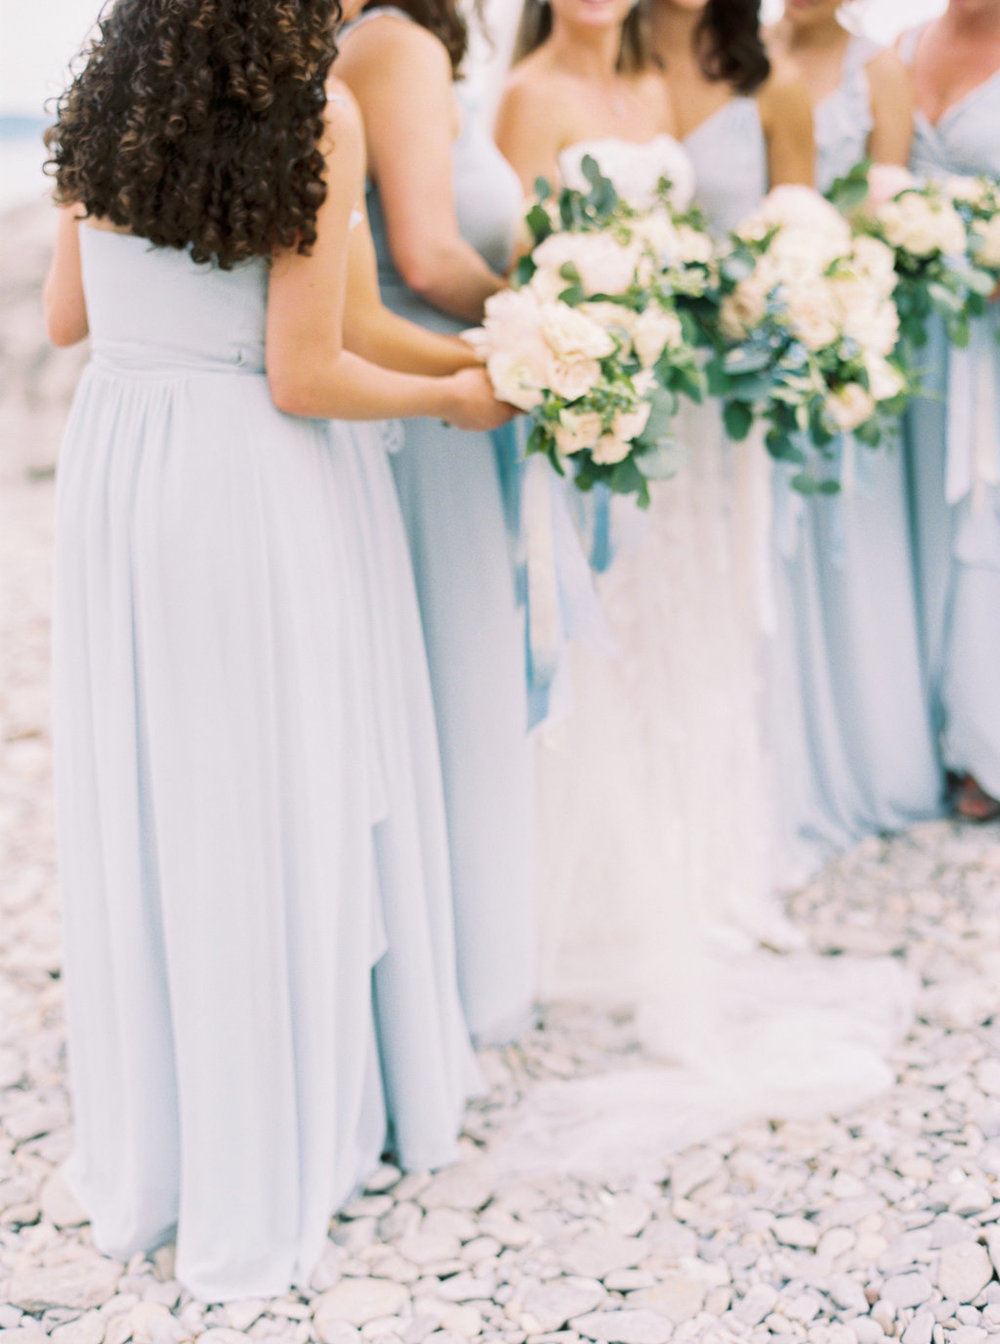 Dusty blue bridesmaid dresses for a summer wedding in Northern Michigan.